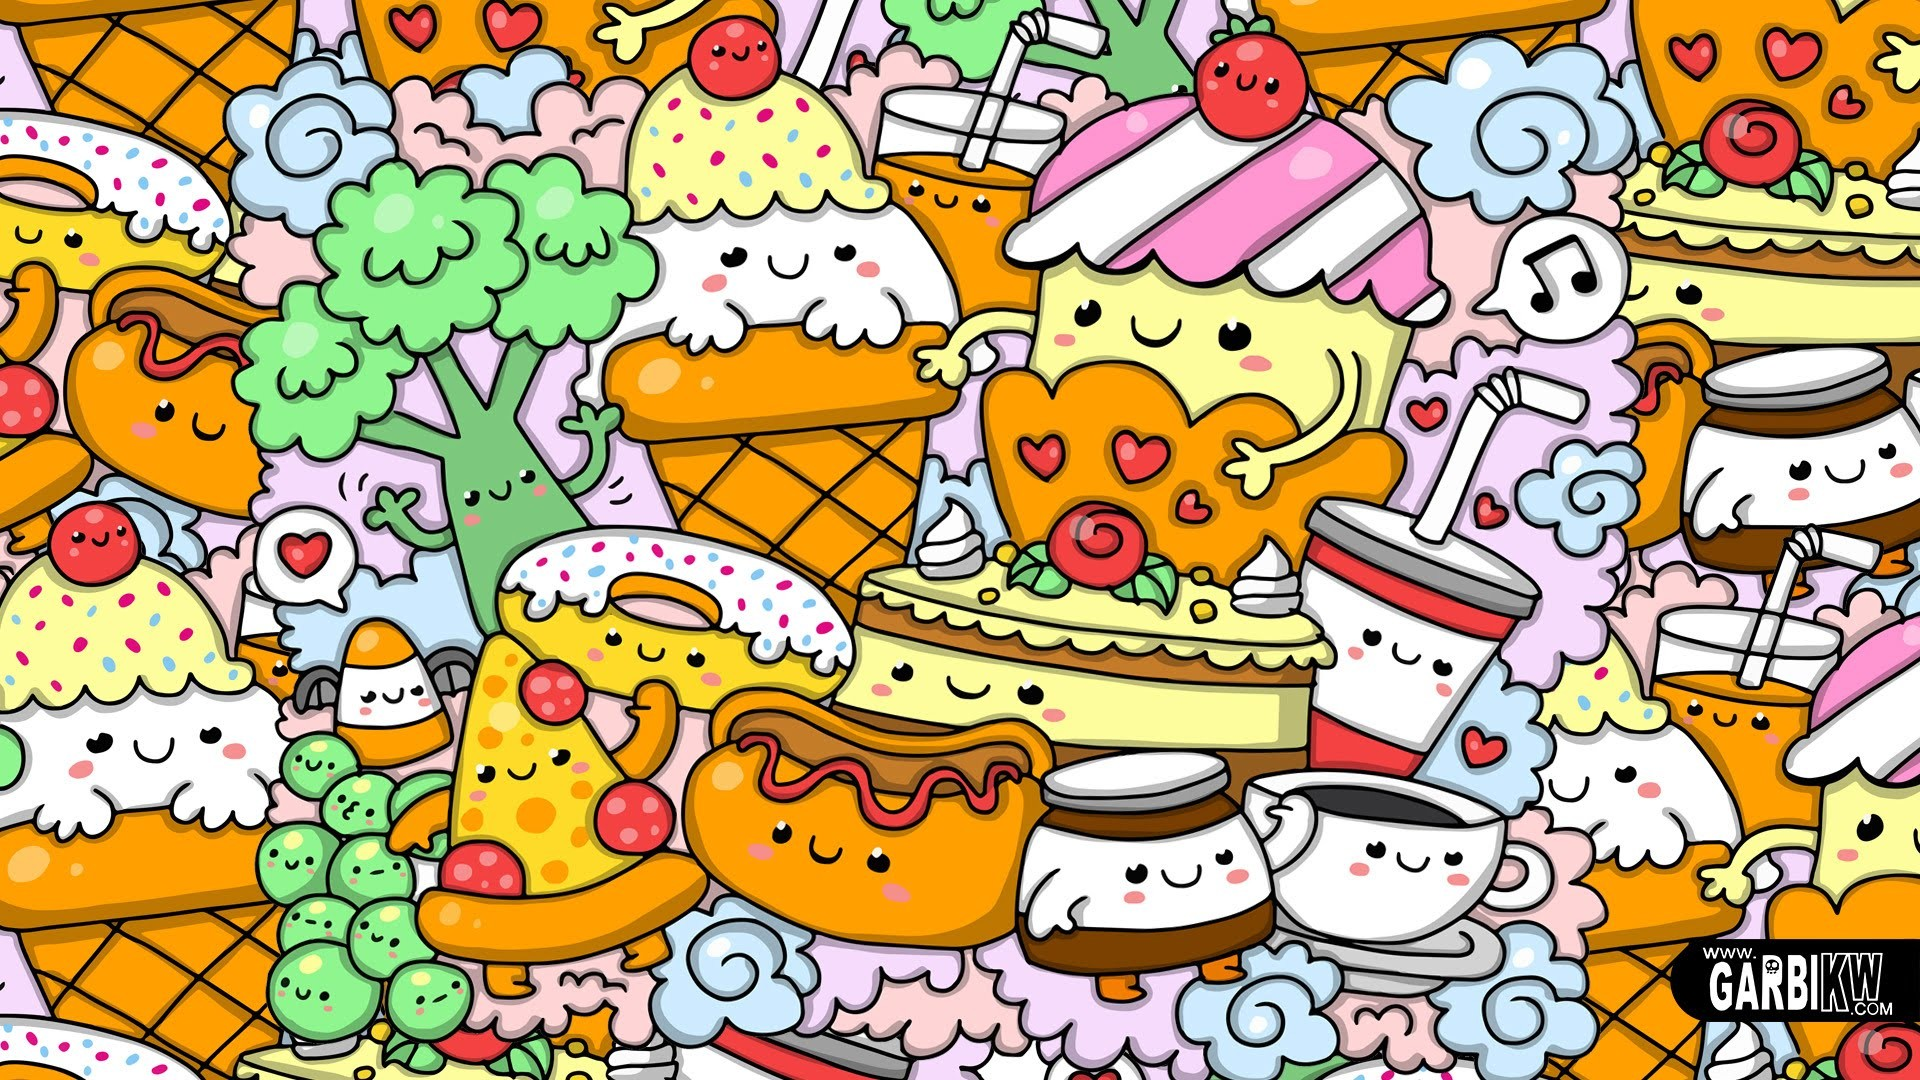 Kawaii food wallpaper 74 immagini - Kawaii food wallpaper ...